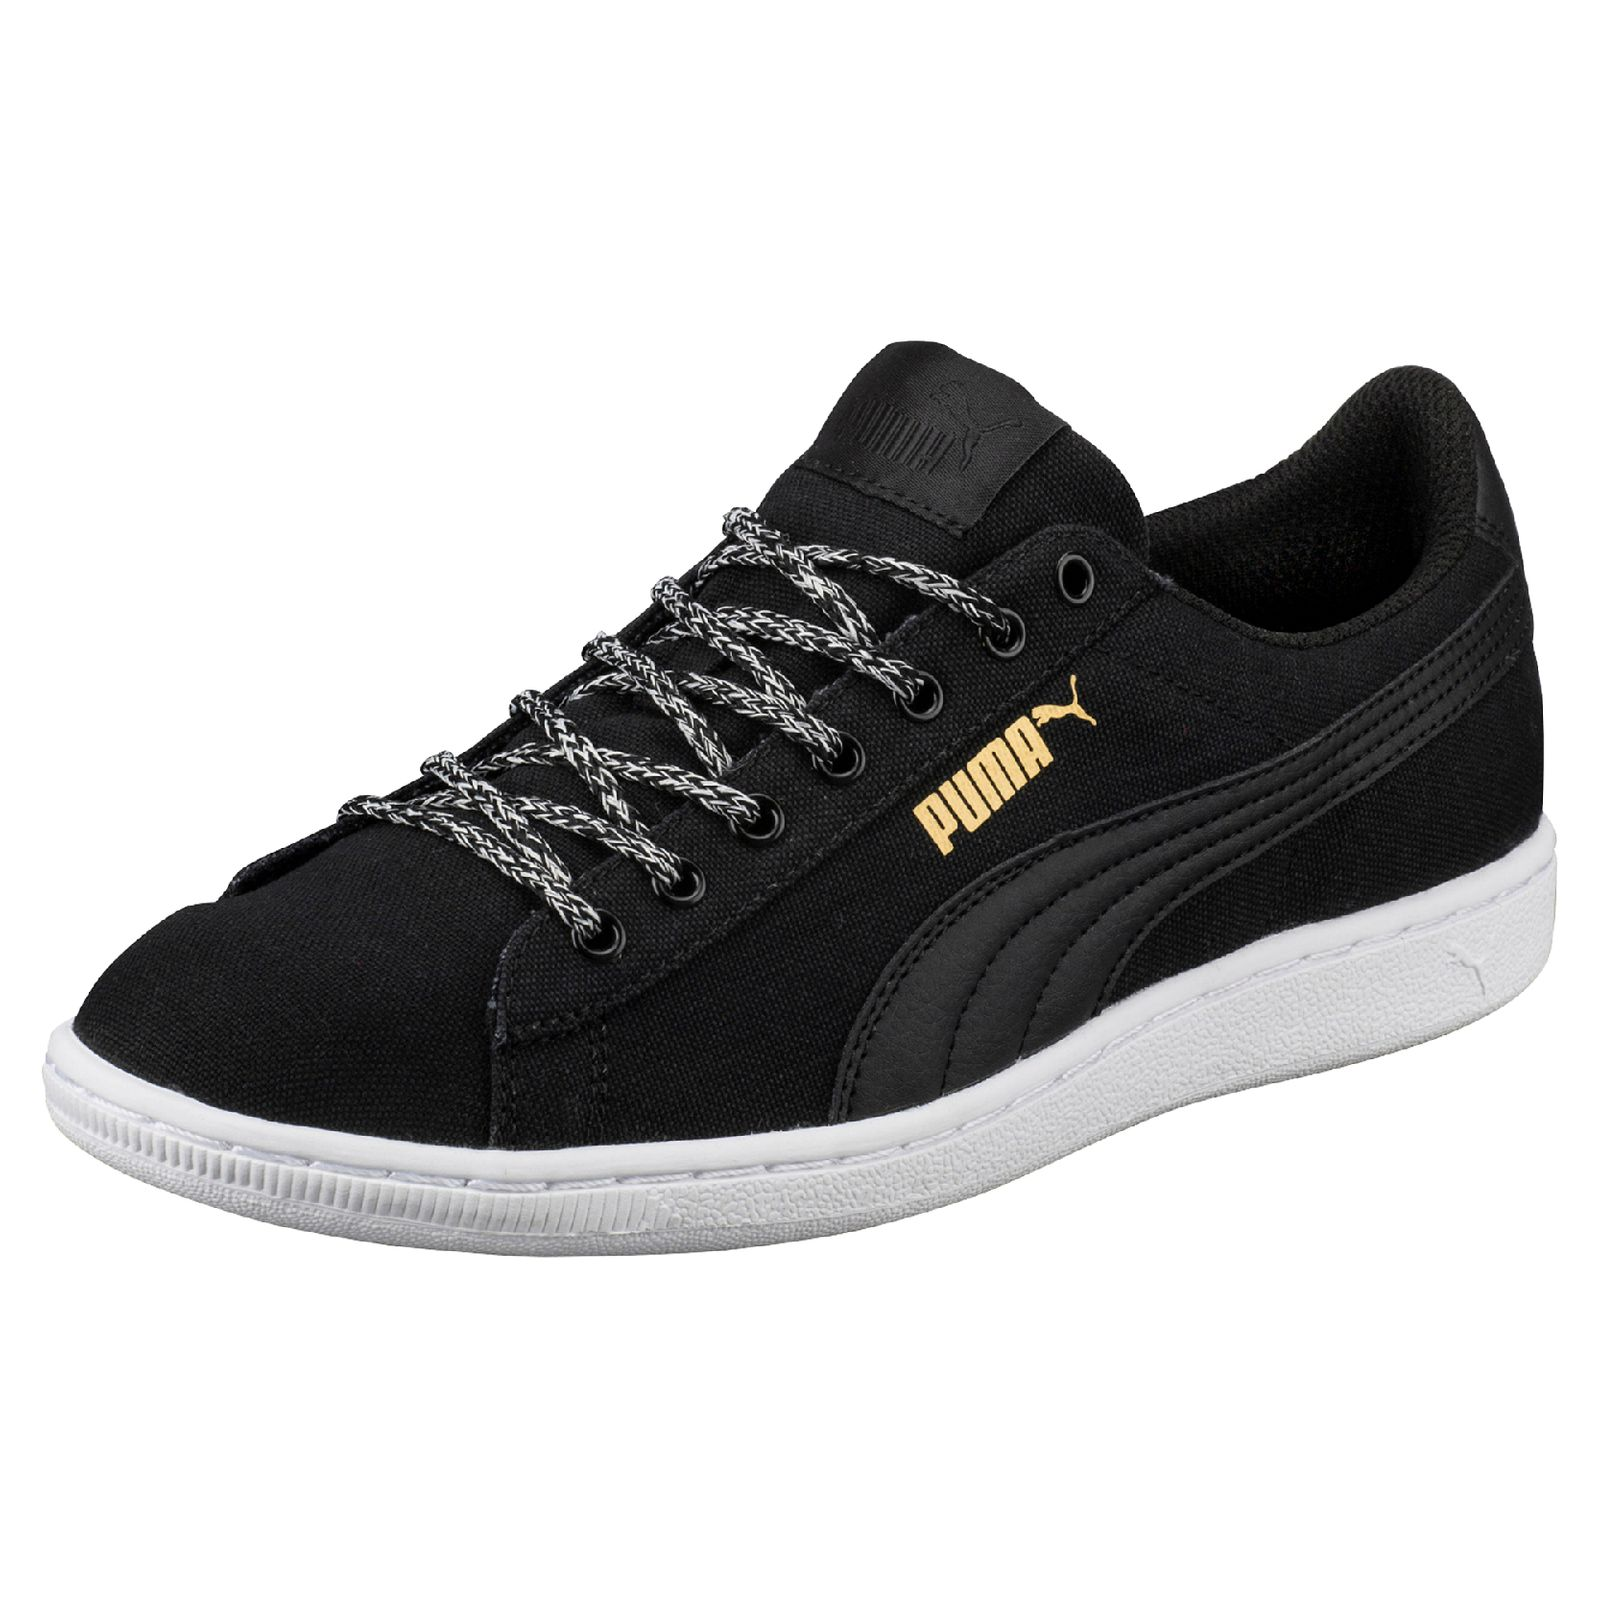 puma damen sneaker vikky spice 362353 02 black damenschuhe. Black Bedroom Furniture Sets. Home Design Ideas